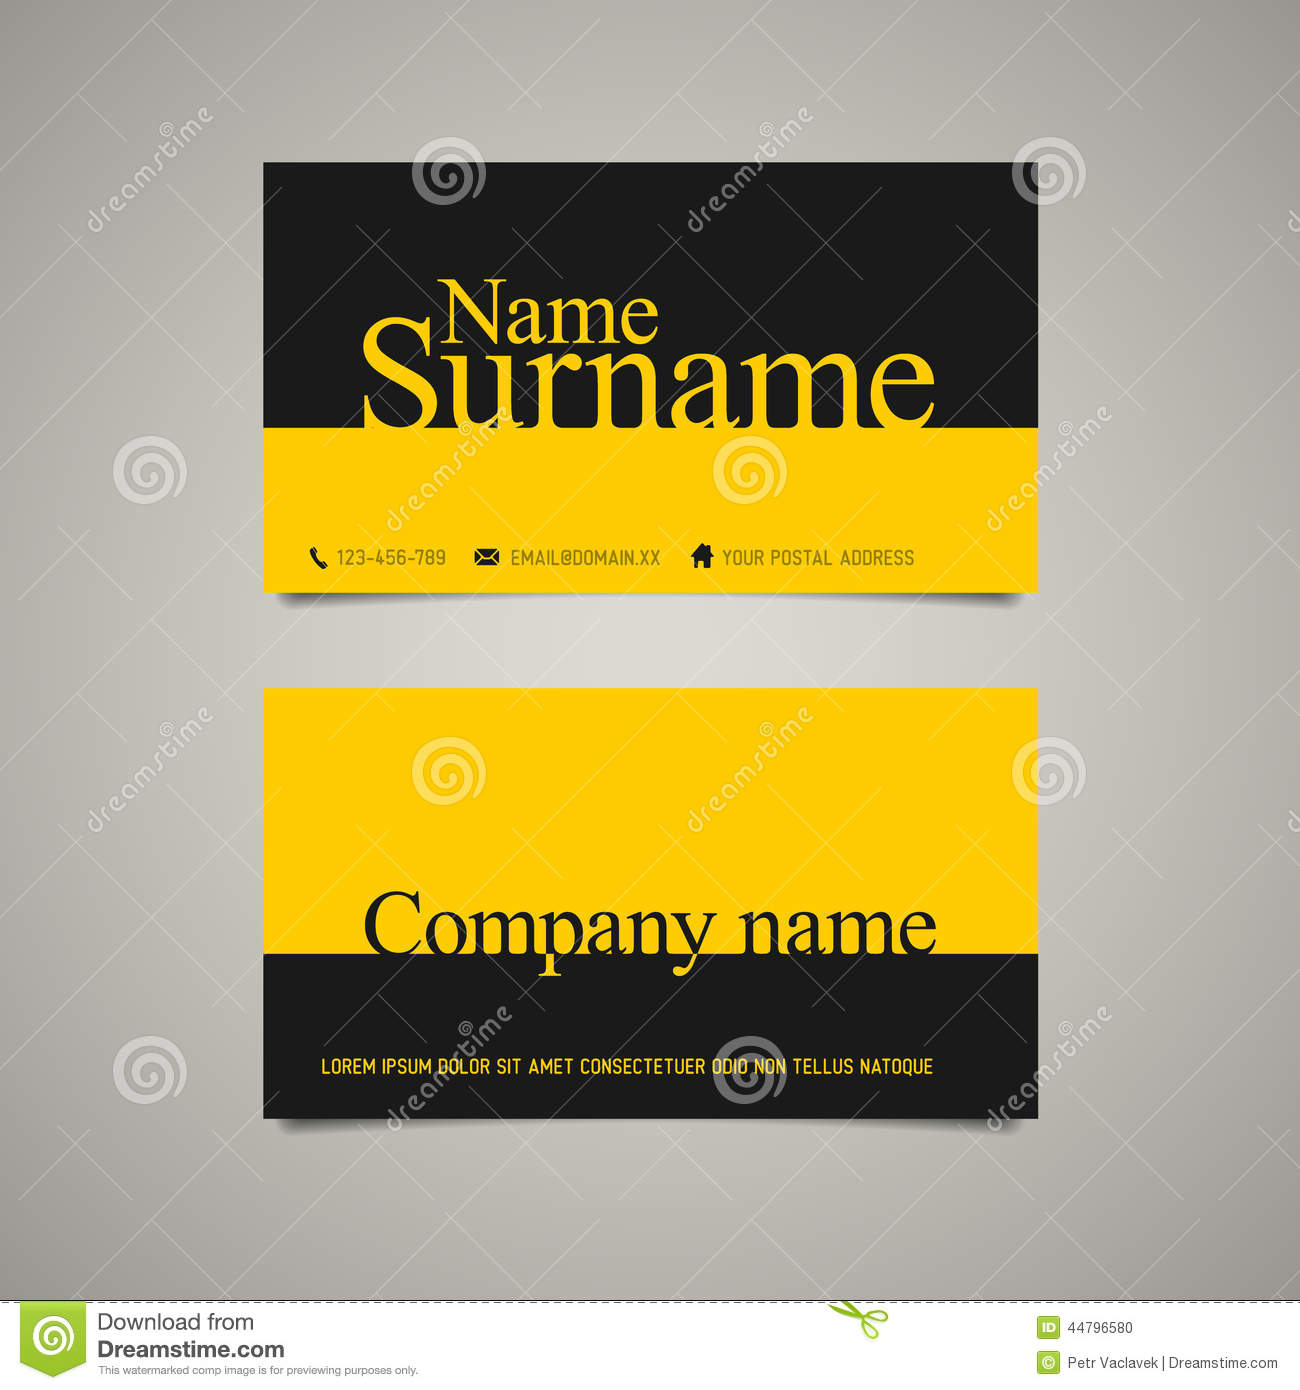 Modern Simple Business Card Template With Big Name Stock Vector ...